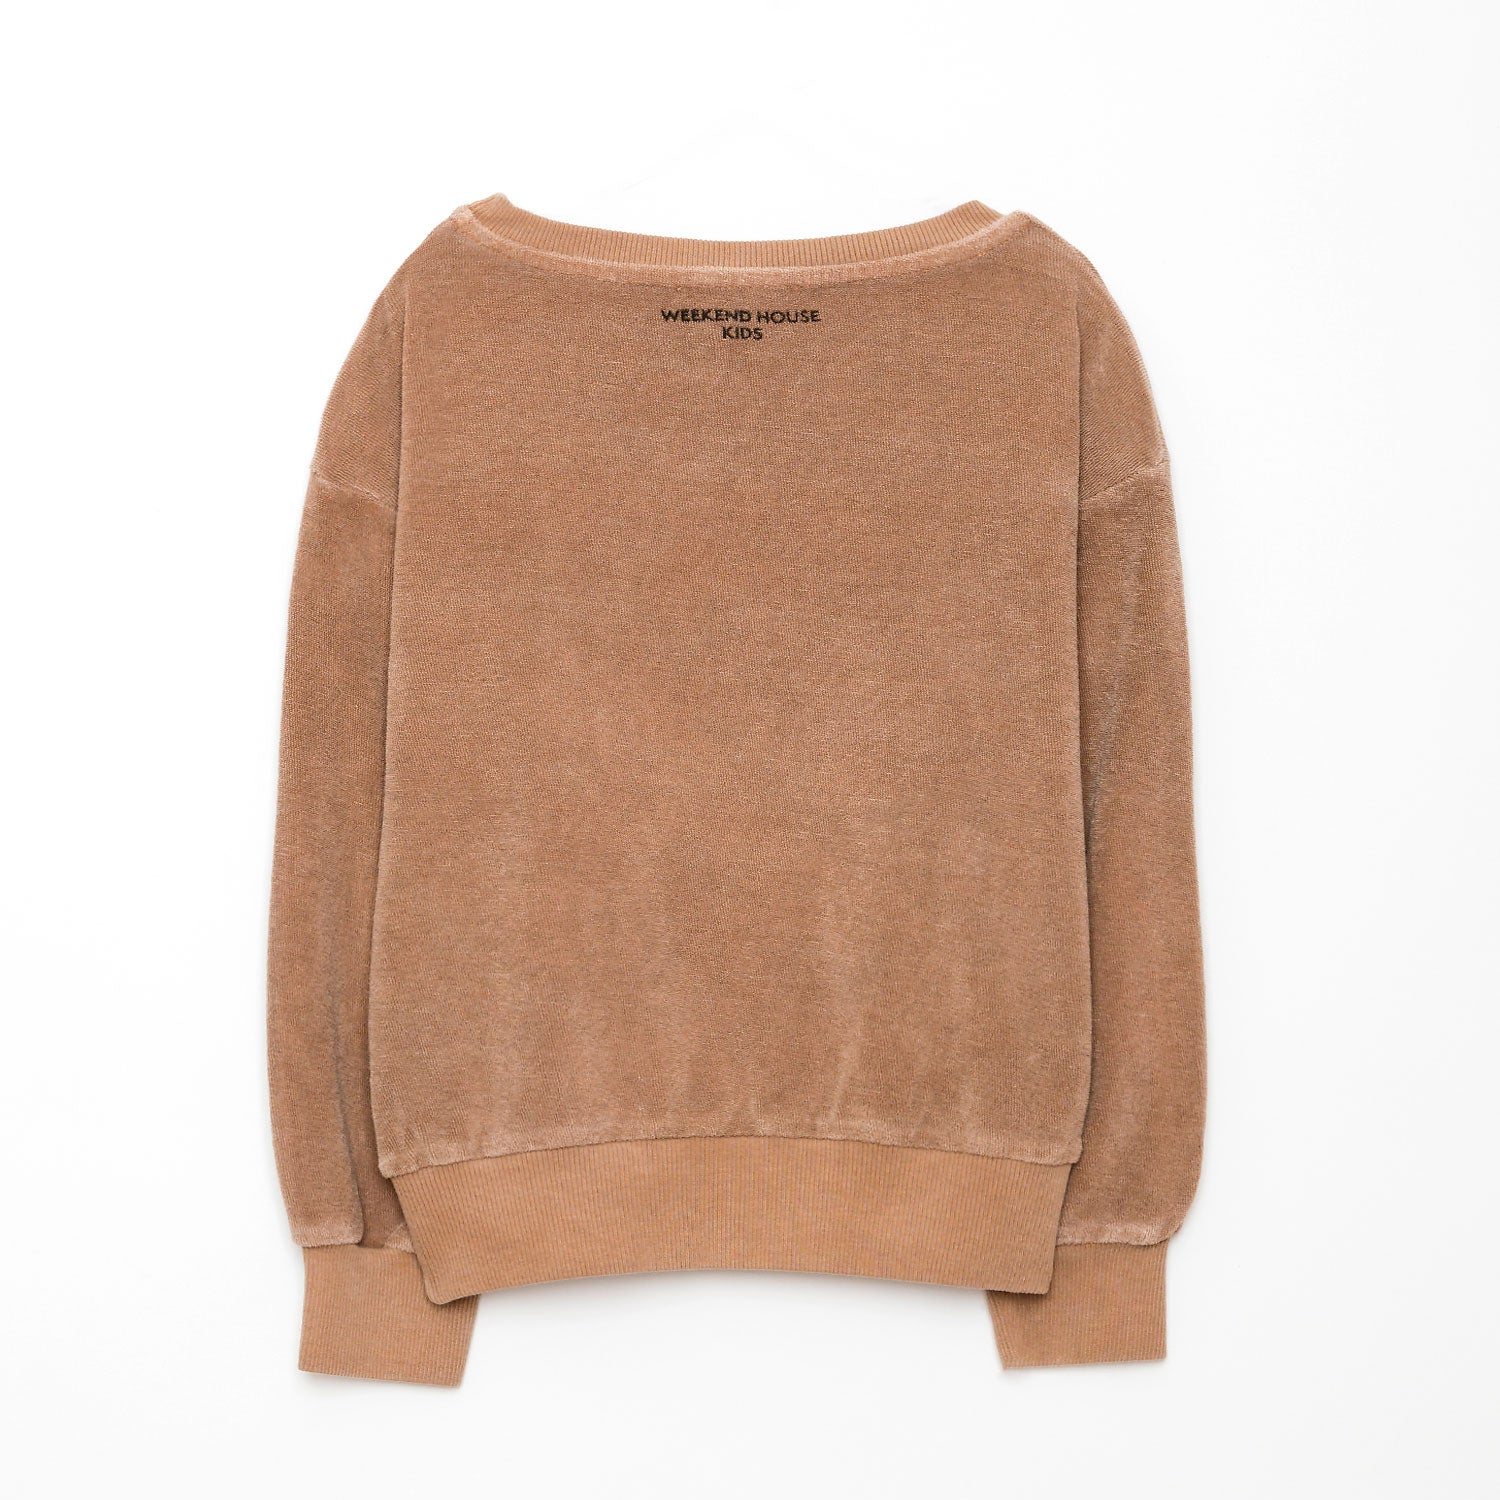 New Weekend House Kids Terry Mr. Flamingo Sweatshirt Camel | BIEN BIEN bienbienshop.com